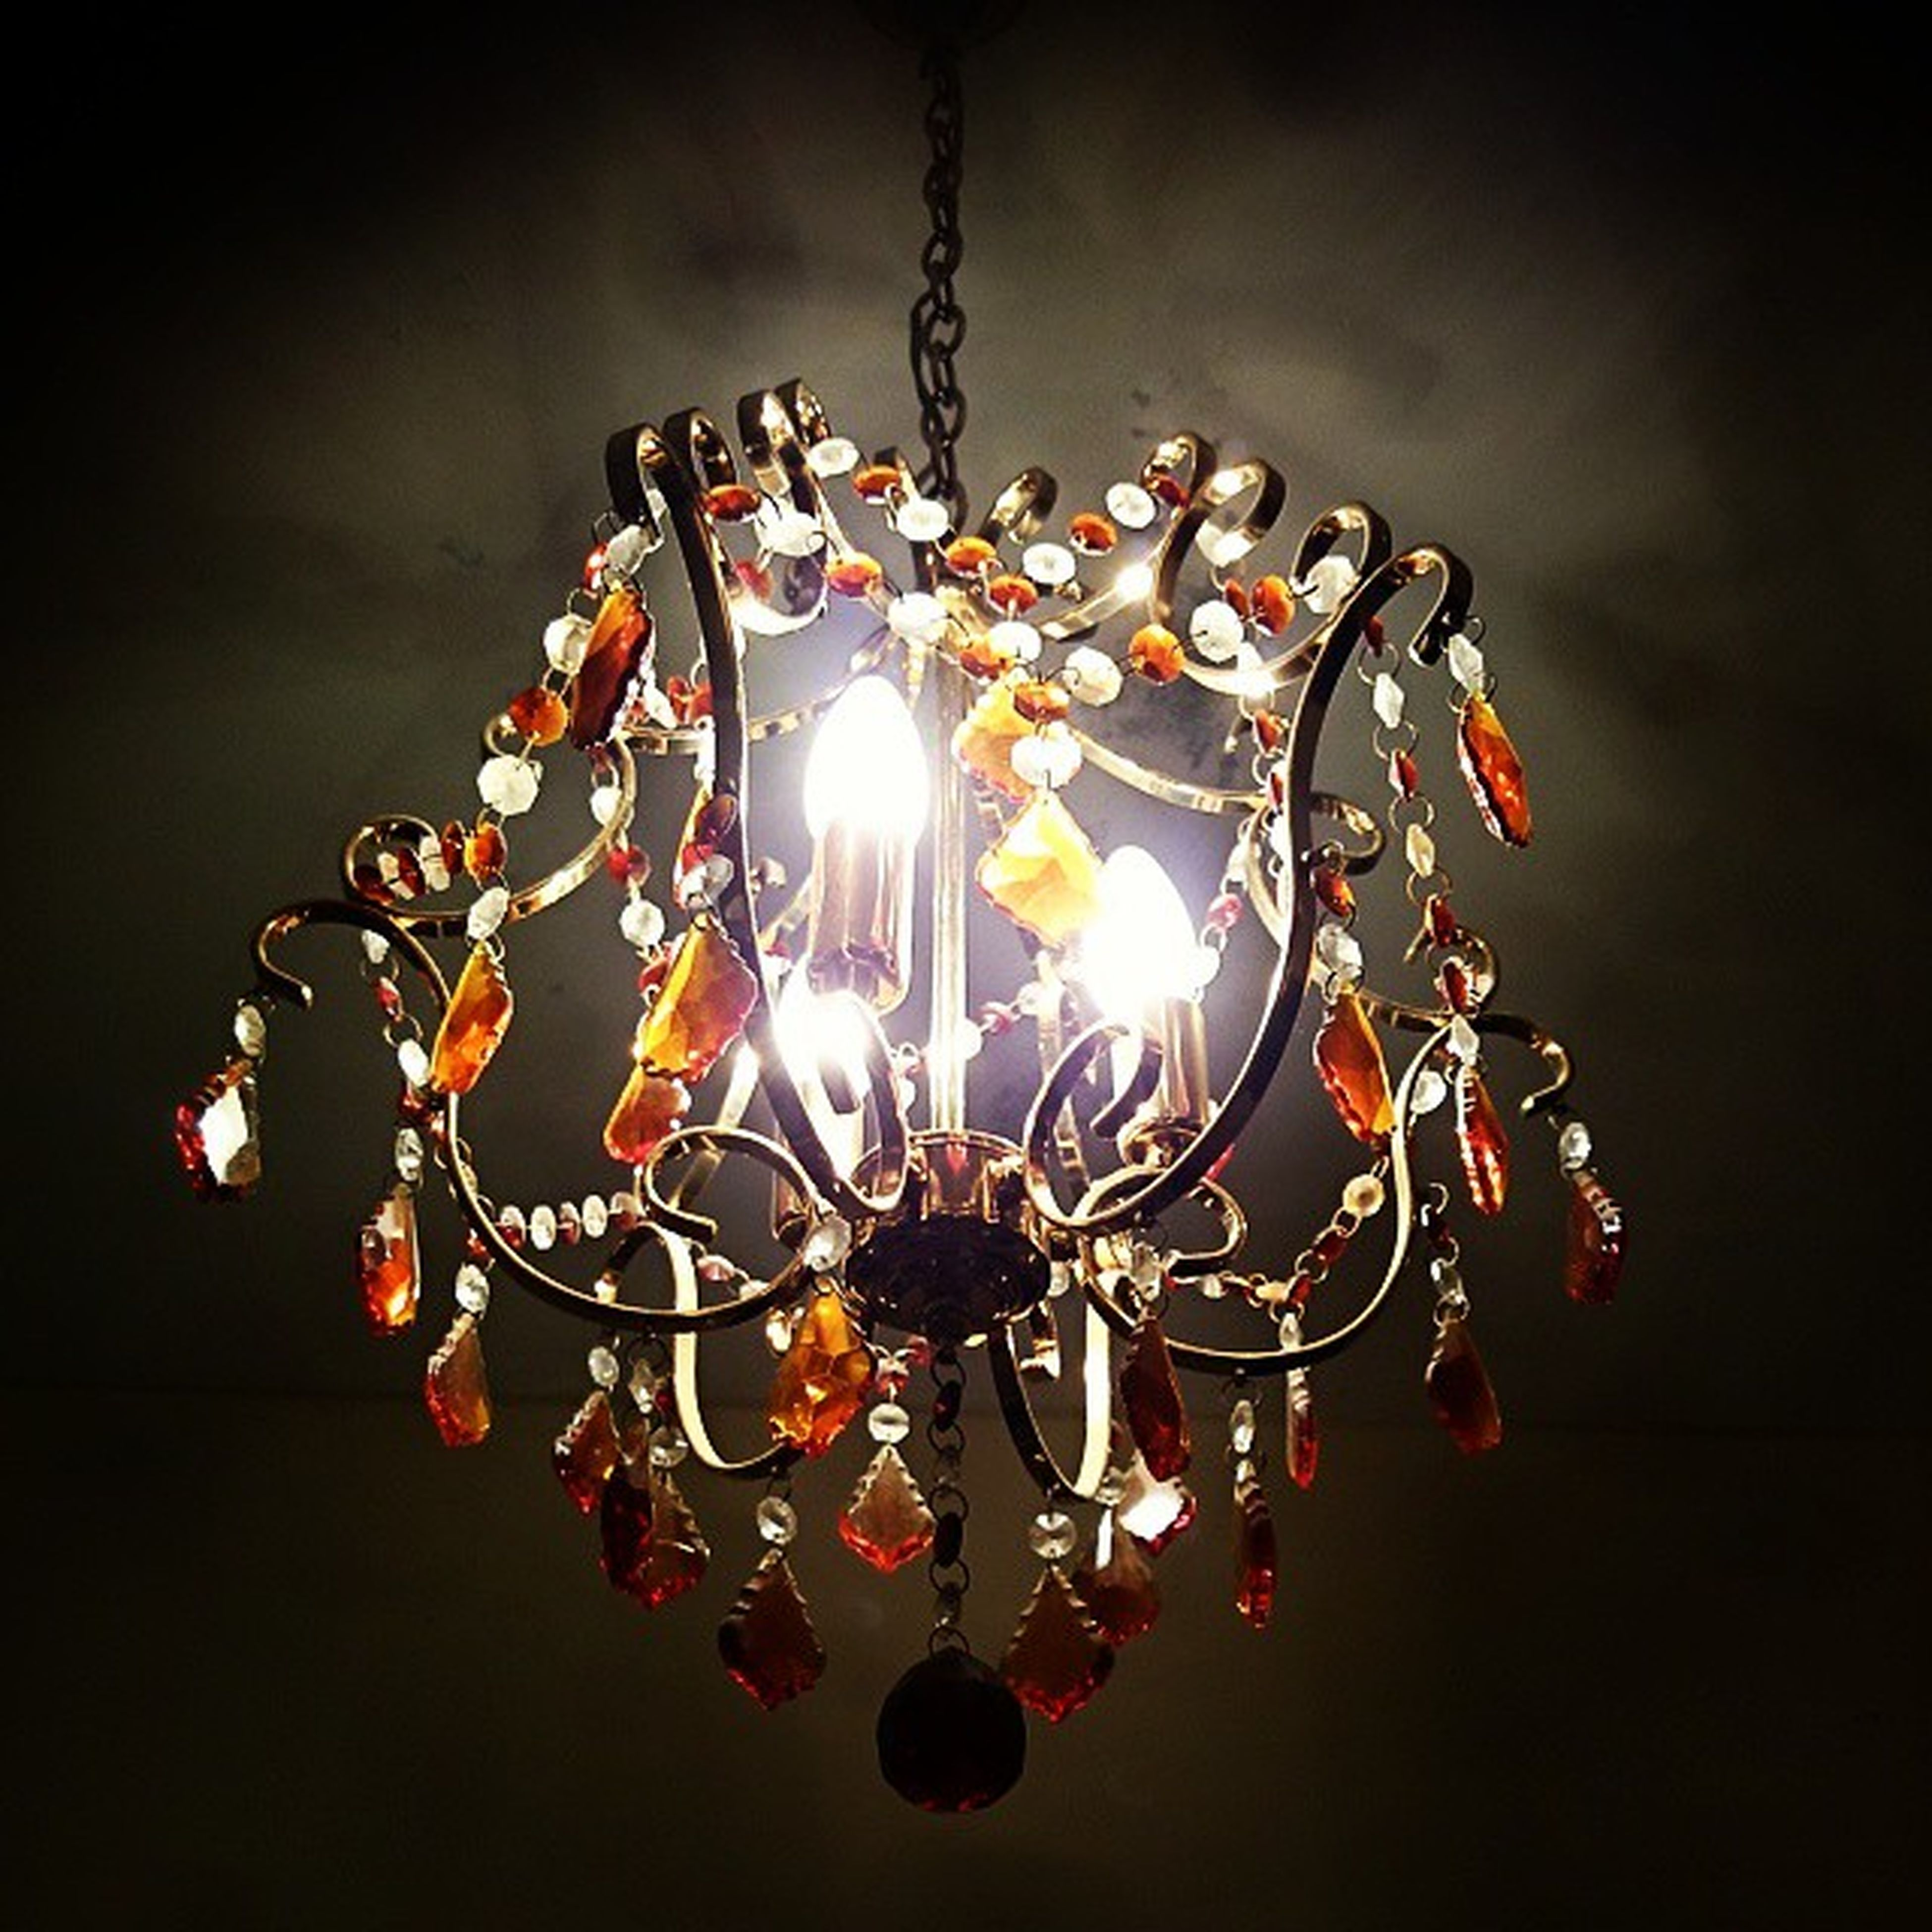 illuminated, hanging, decoration, indoors, lighting equipment, low angle view, chandelier, decor, glowing, electricity, ceiling, celebration, design, night, light bulb, close-up, tradition, pattern, light - natural phenomenon, electric light